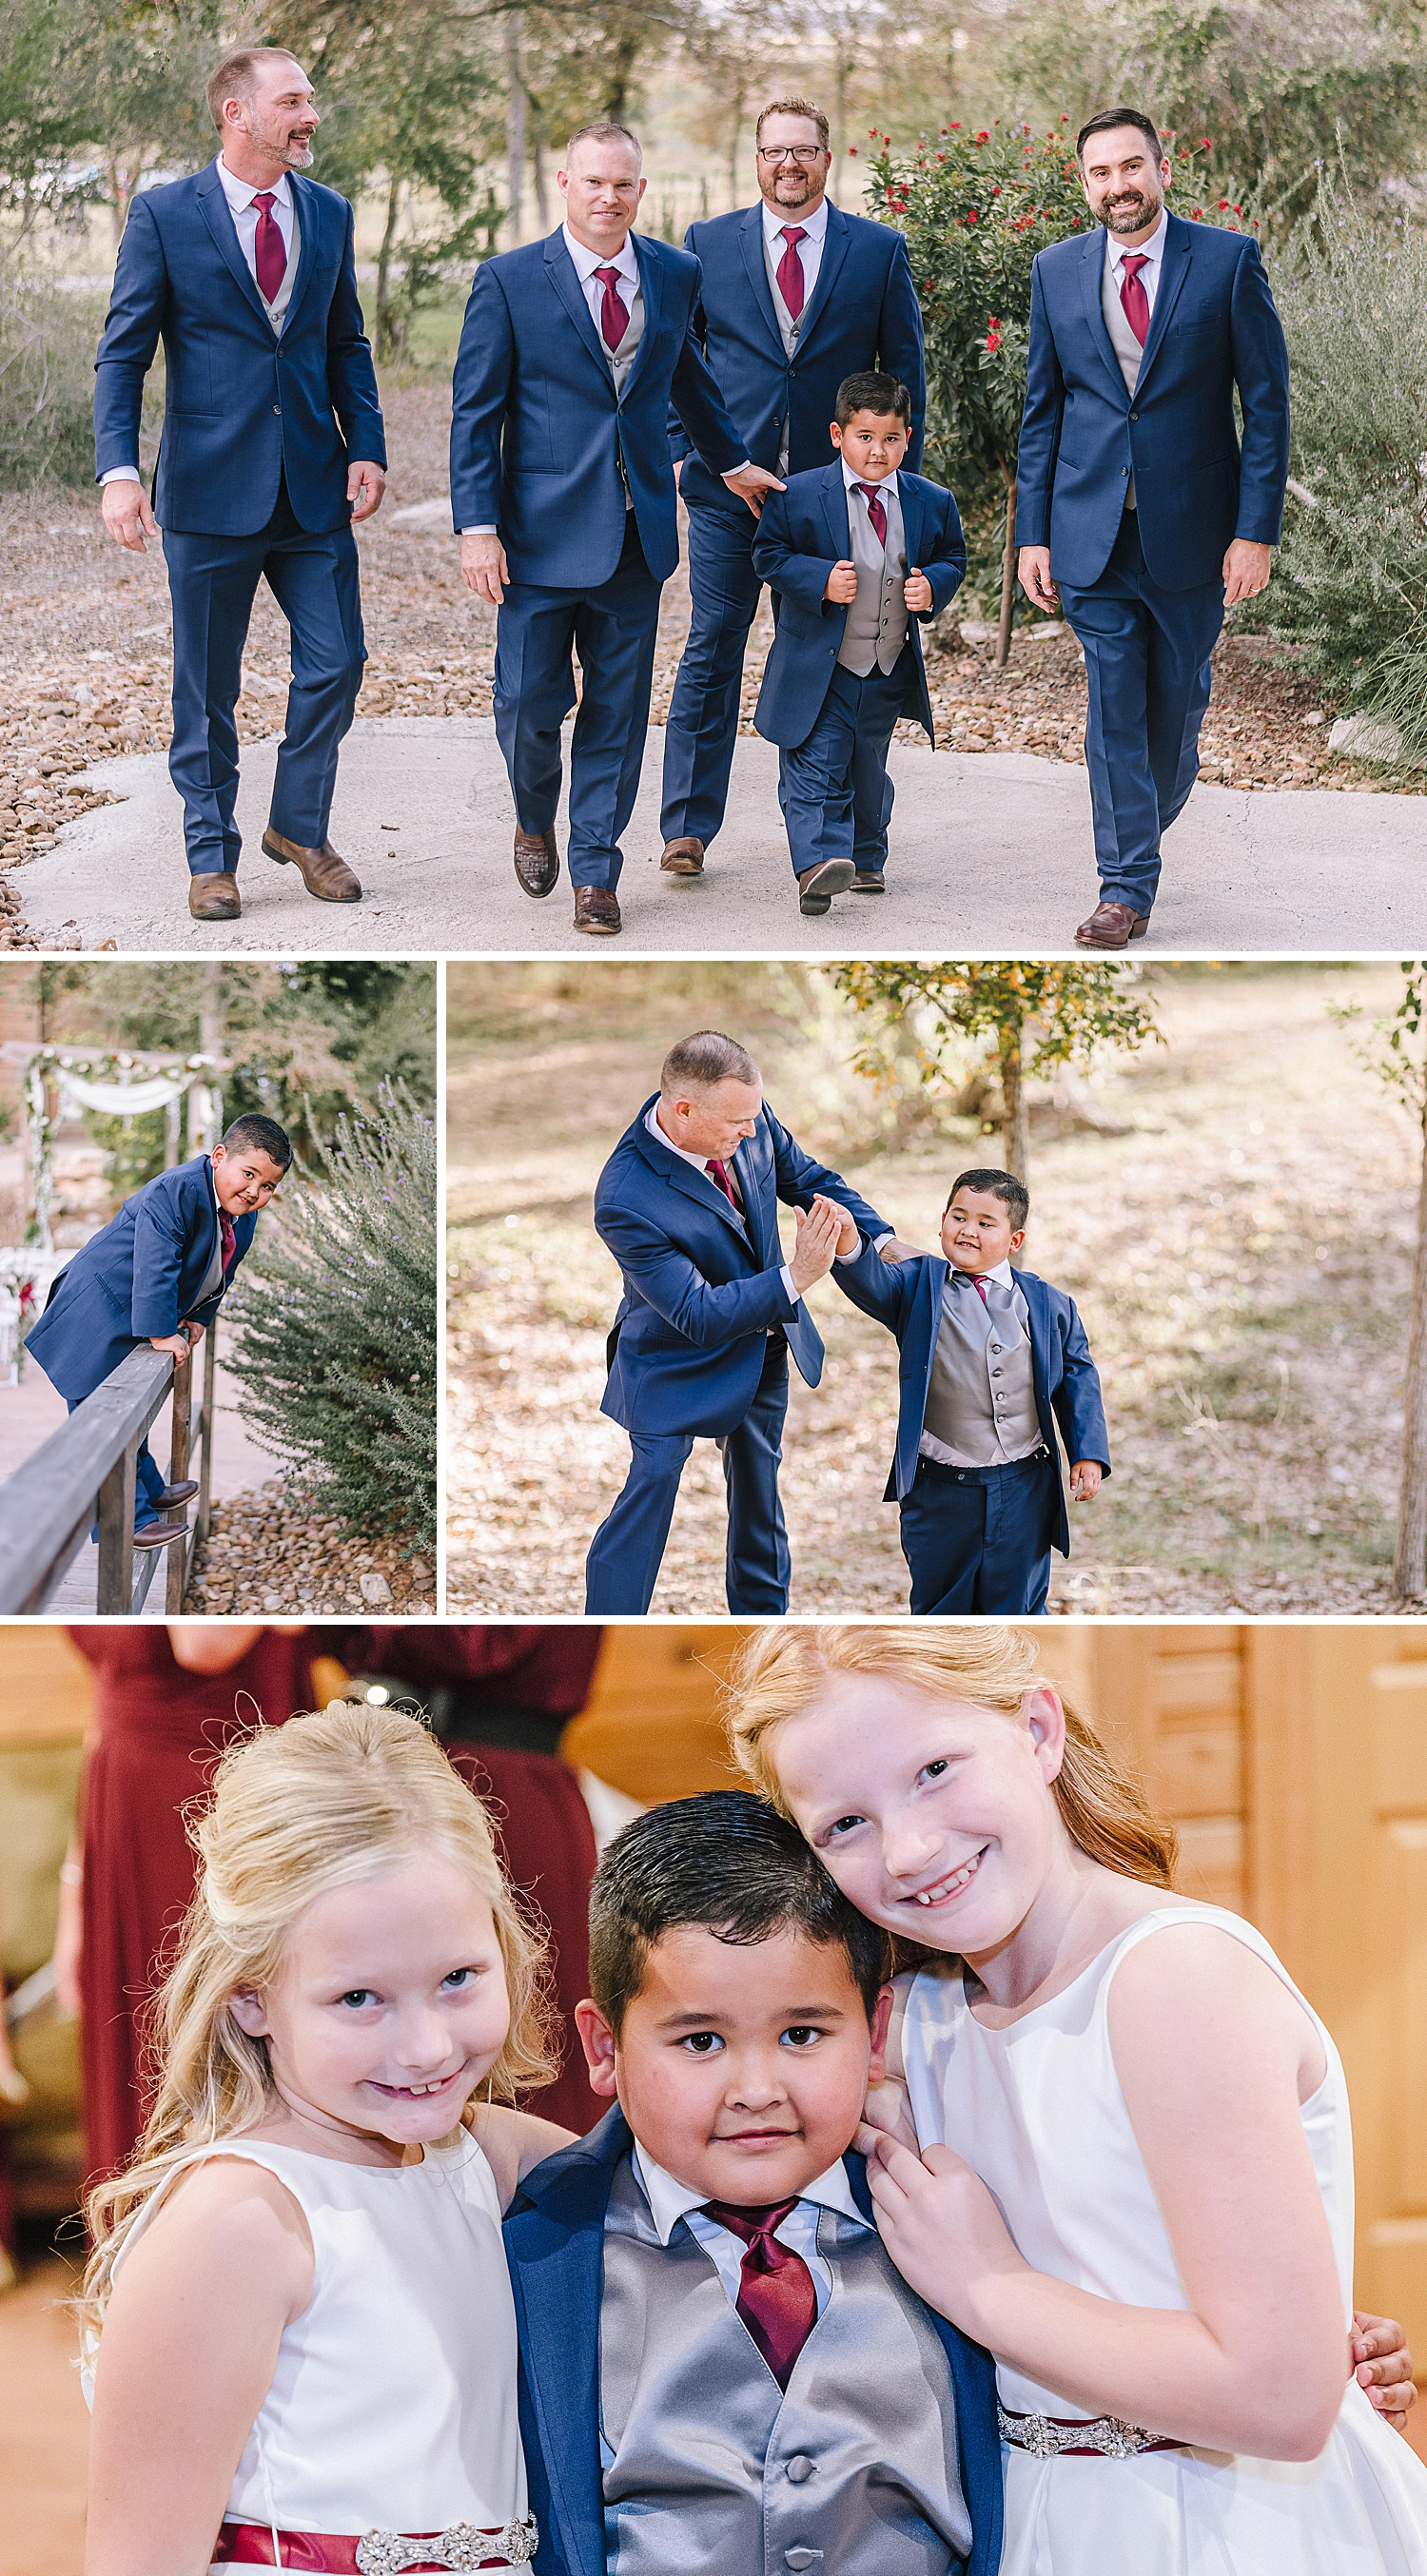 Geronimo-Oaks-Wedding-Venue-Seguin-Texas-Elegant-Navy-Burgundy-Wedding-Carly-Barton-Photography_0041.jpg